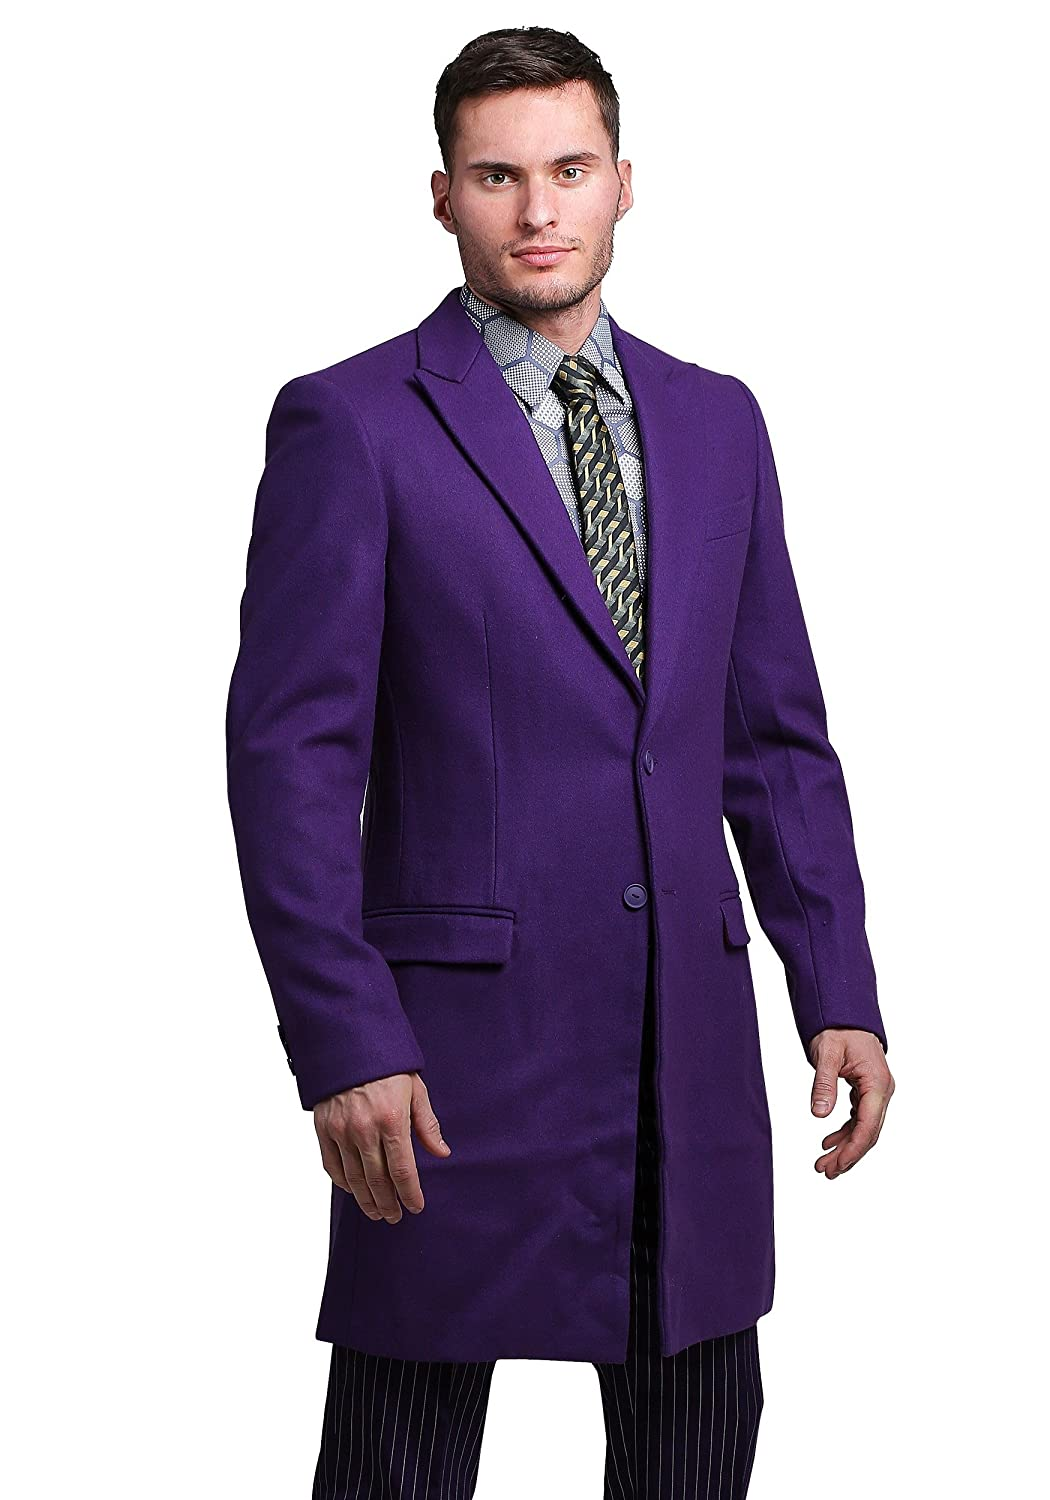 FUNSUITS The Joker Suit Overcoat (Authentic)